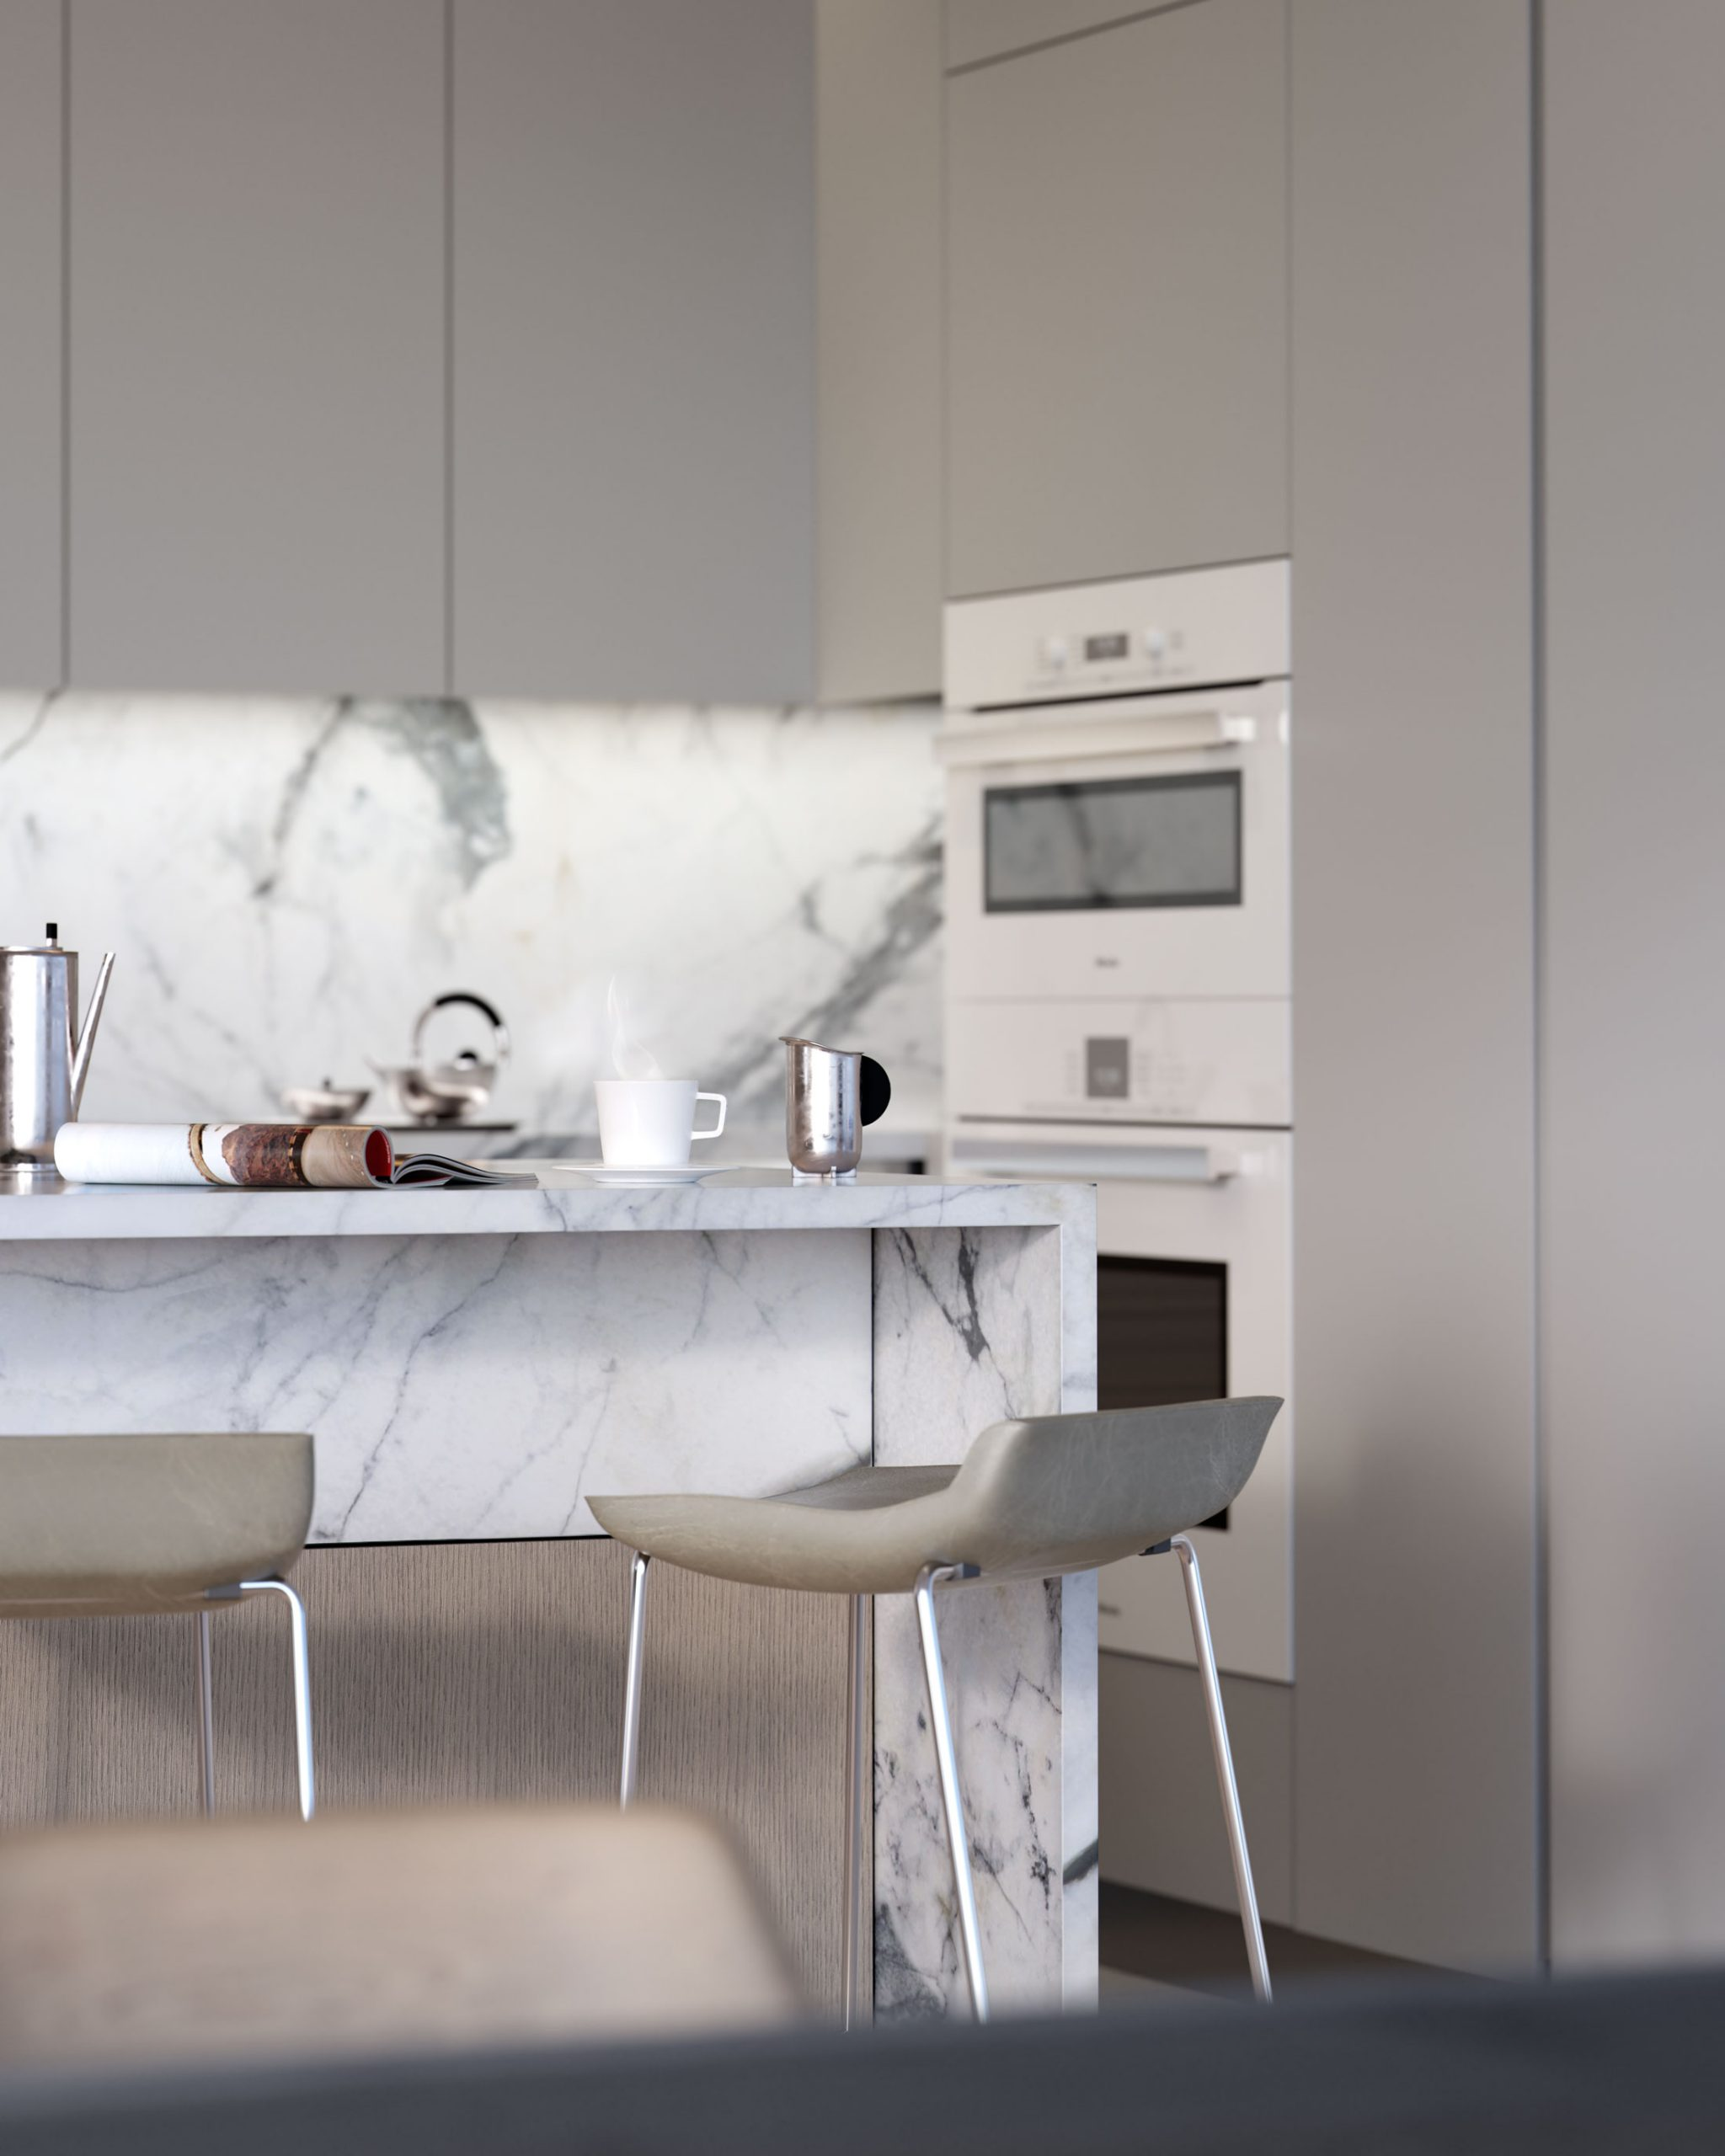 Architectural Rendering of a kitchen detail of the 80 East 10th Street project located in Greenwich Village in New York City